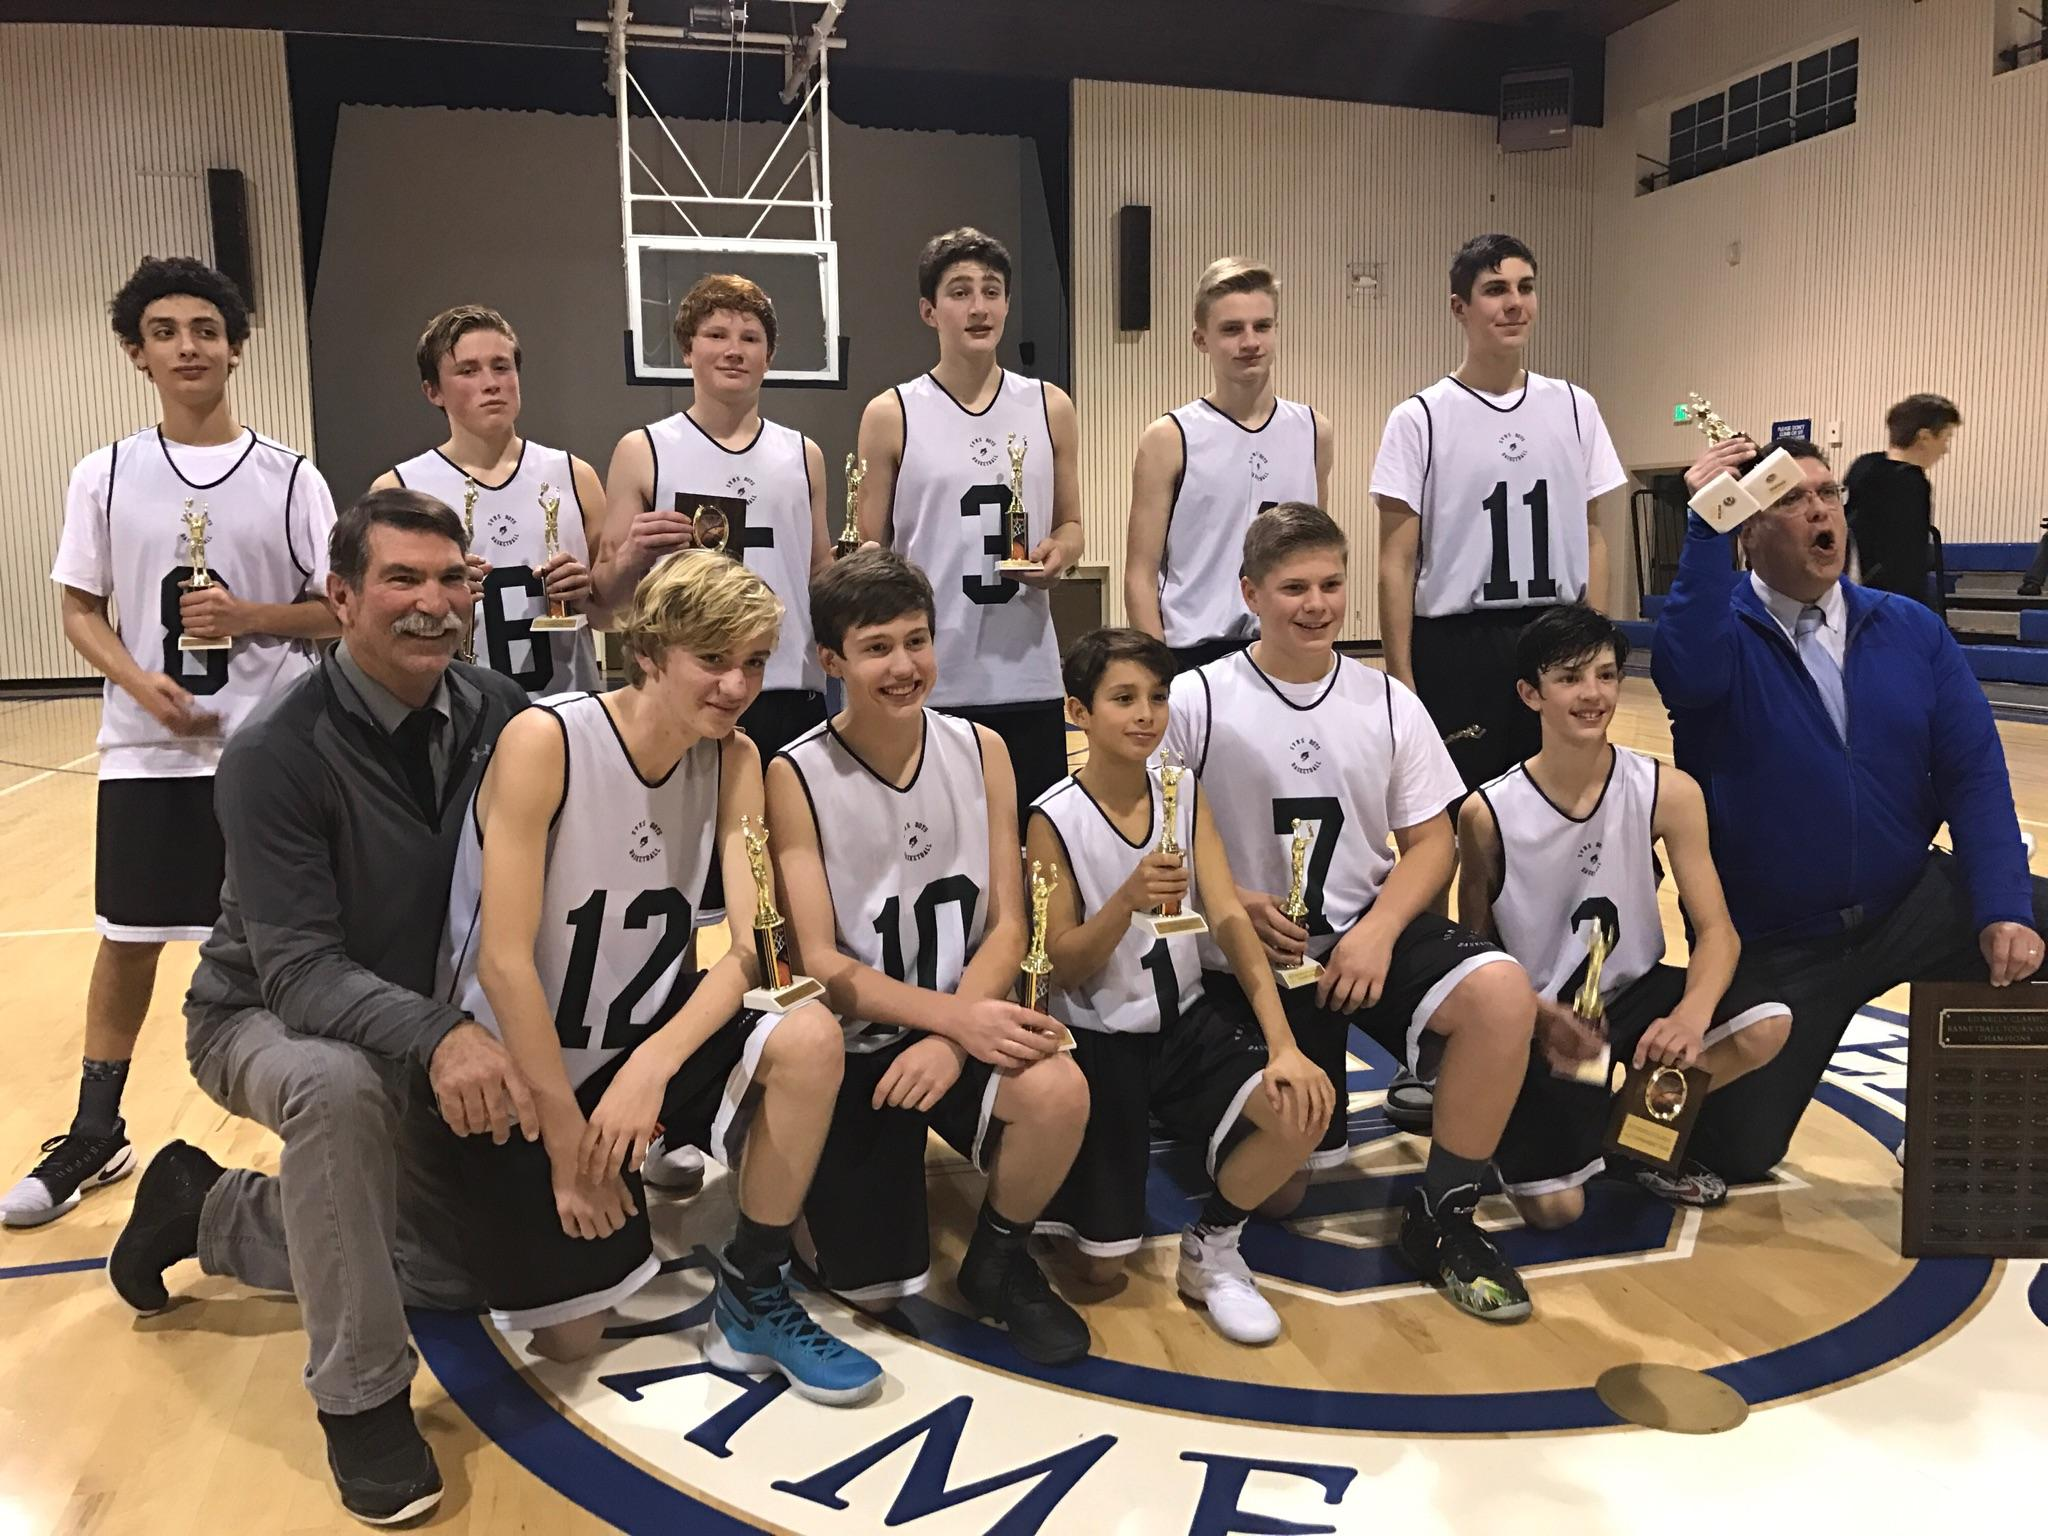 8th Grade Boys win the Ed Kelly tournament 2017